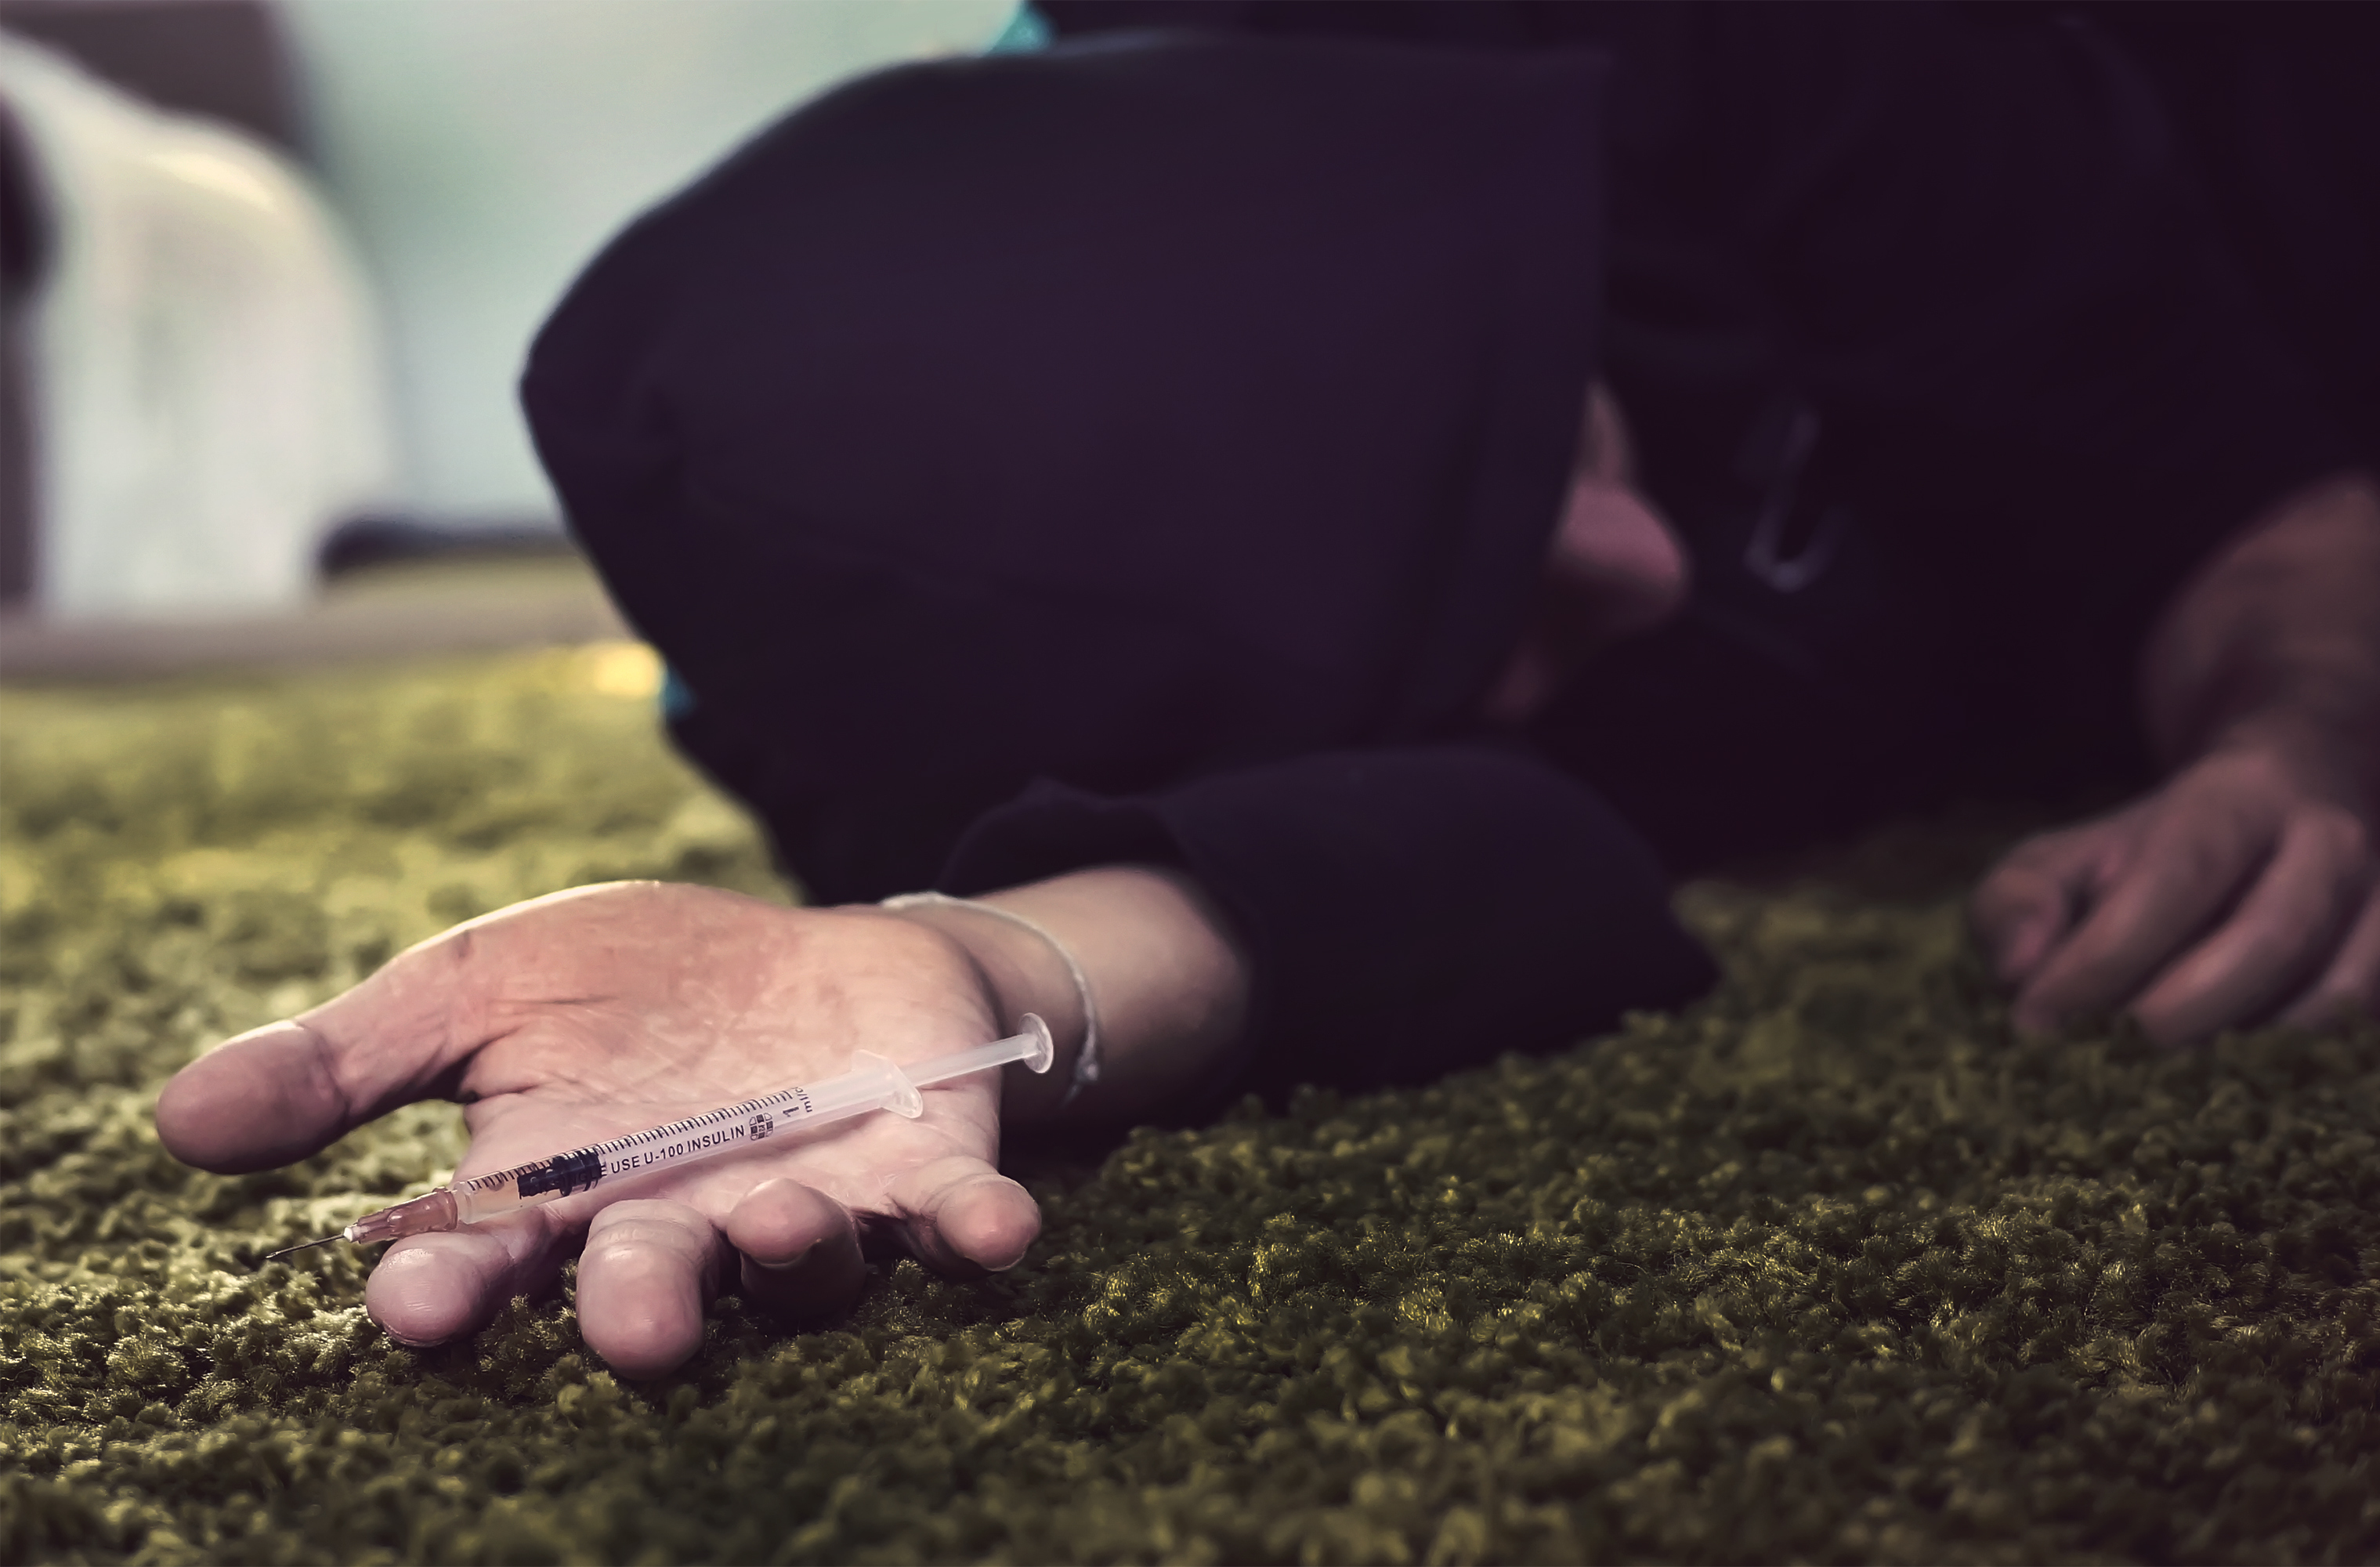 Recognizing Fentanyl Overdose Symptoms Before It's Too Late